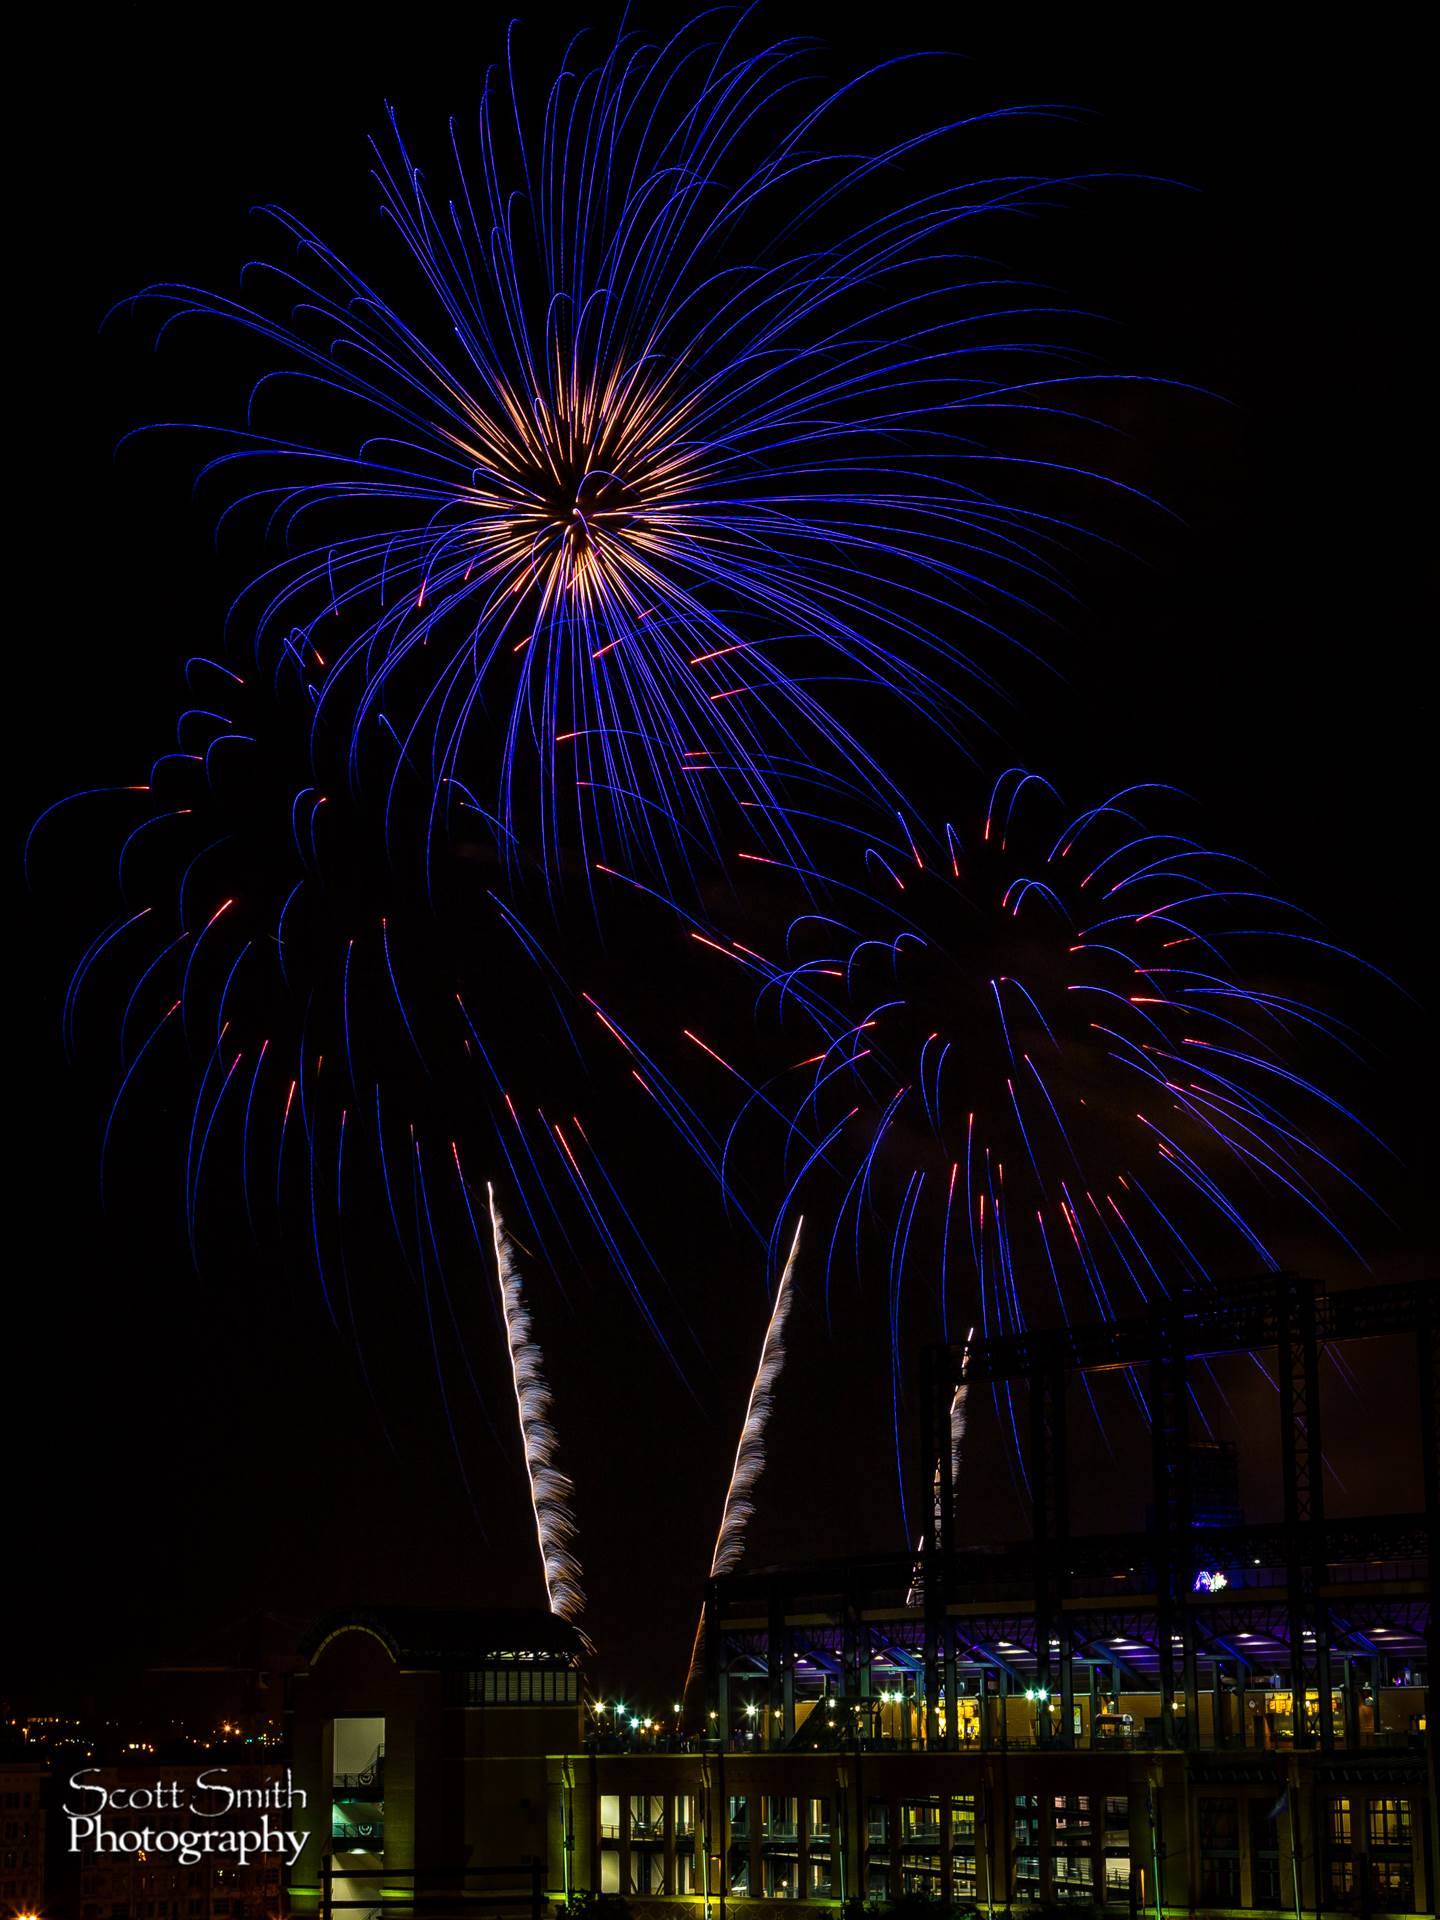 Fireworks over Coors Field 3 - Fourth of July fireworks over Coors Field after a Colorado Rockies game. by D Scott Smith